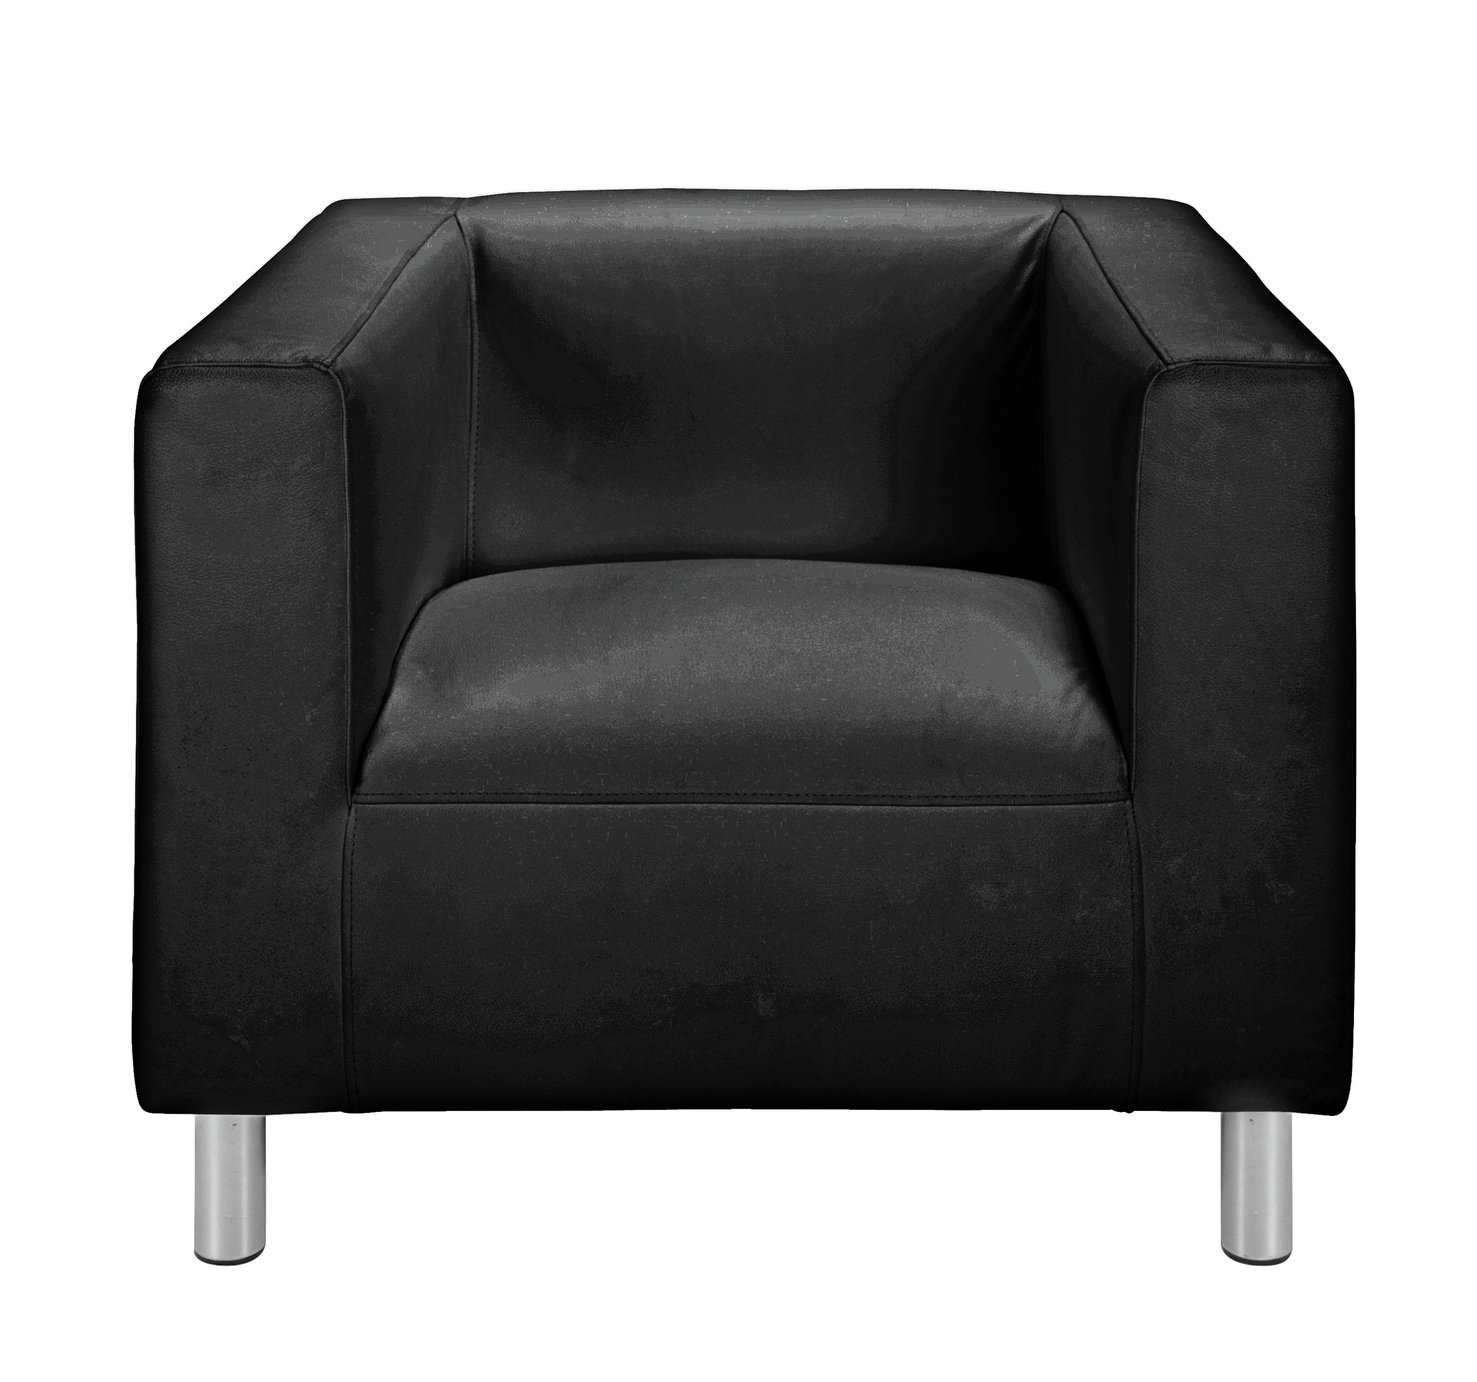 Argos Home Moda Faux Leather Armchair - Black